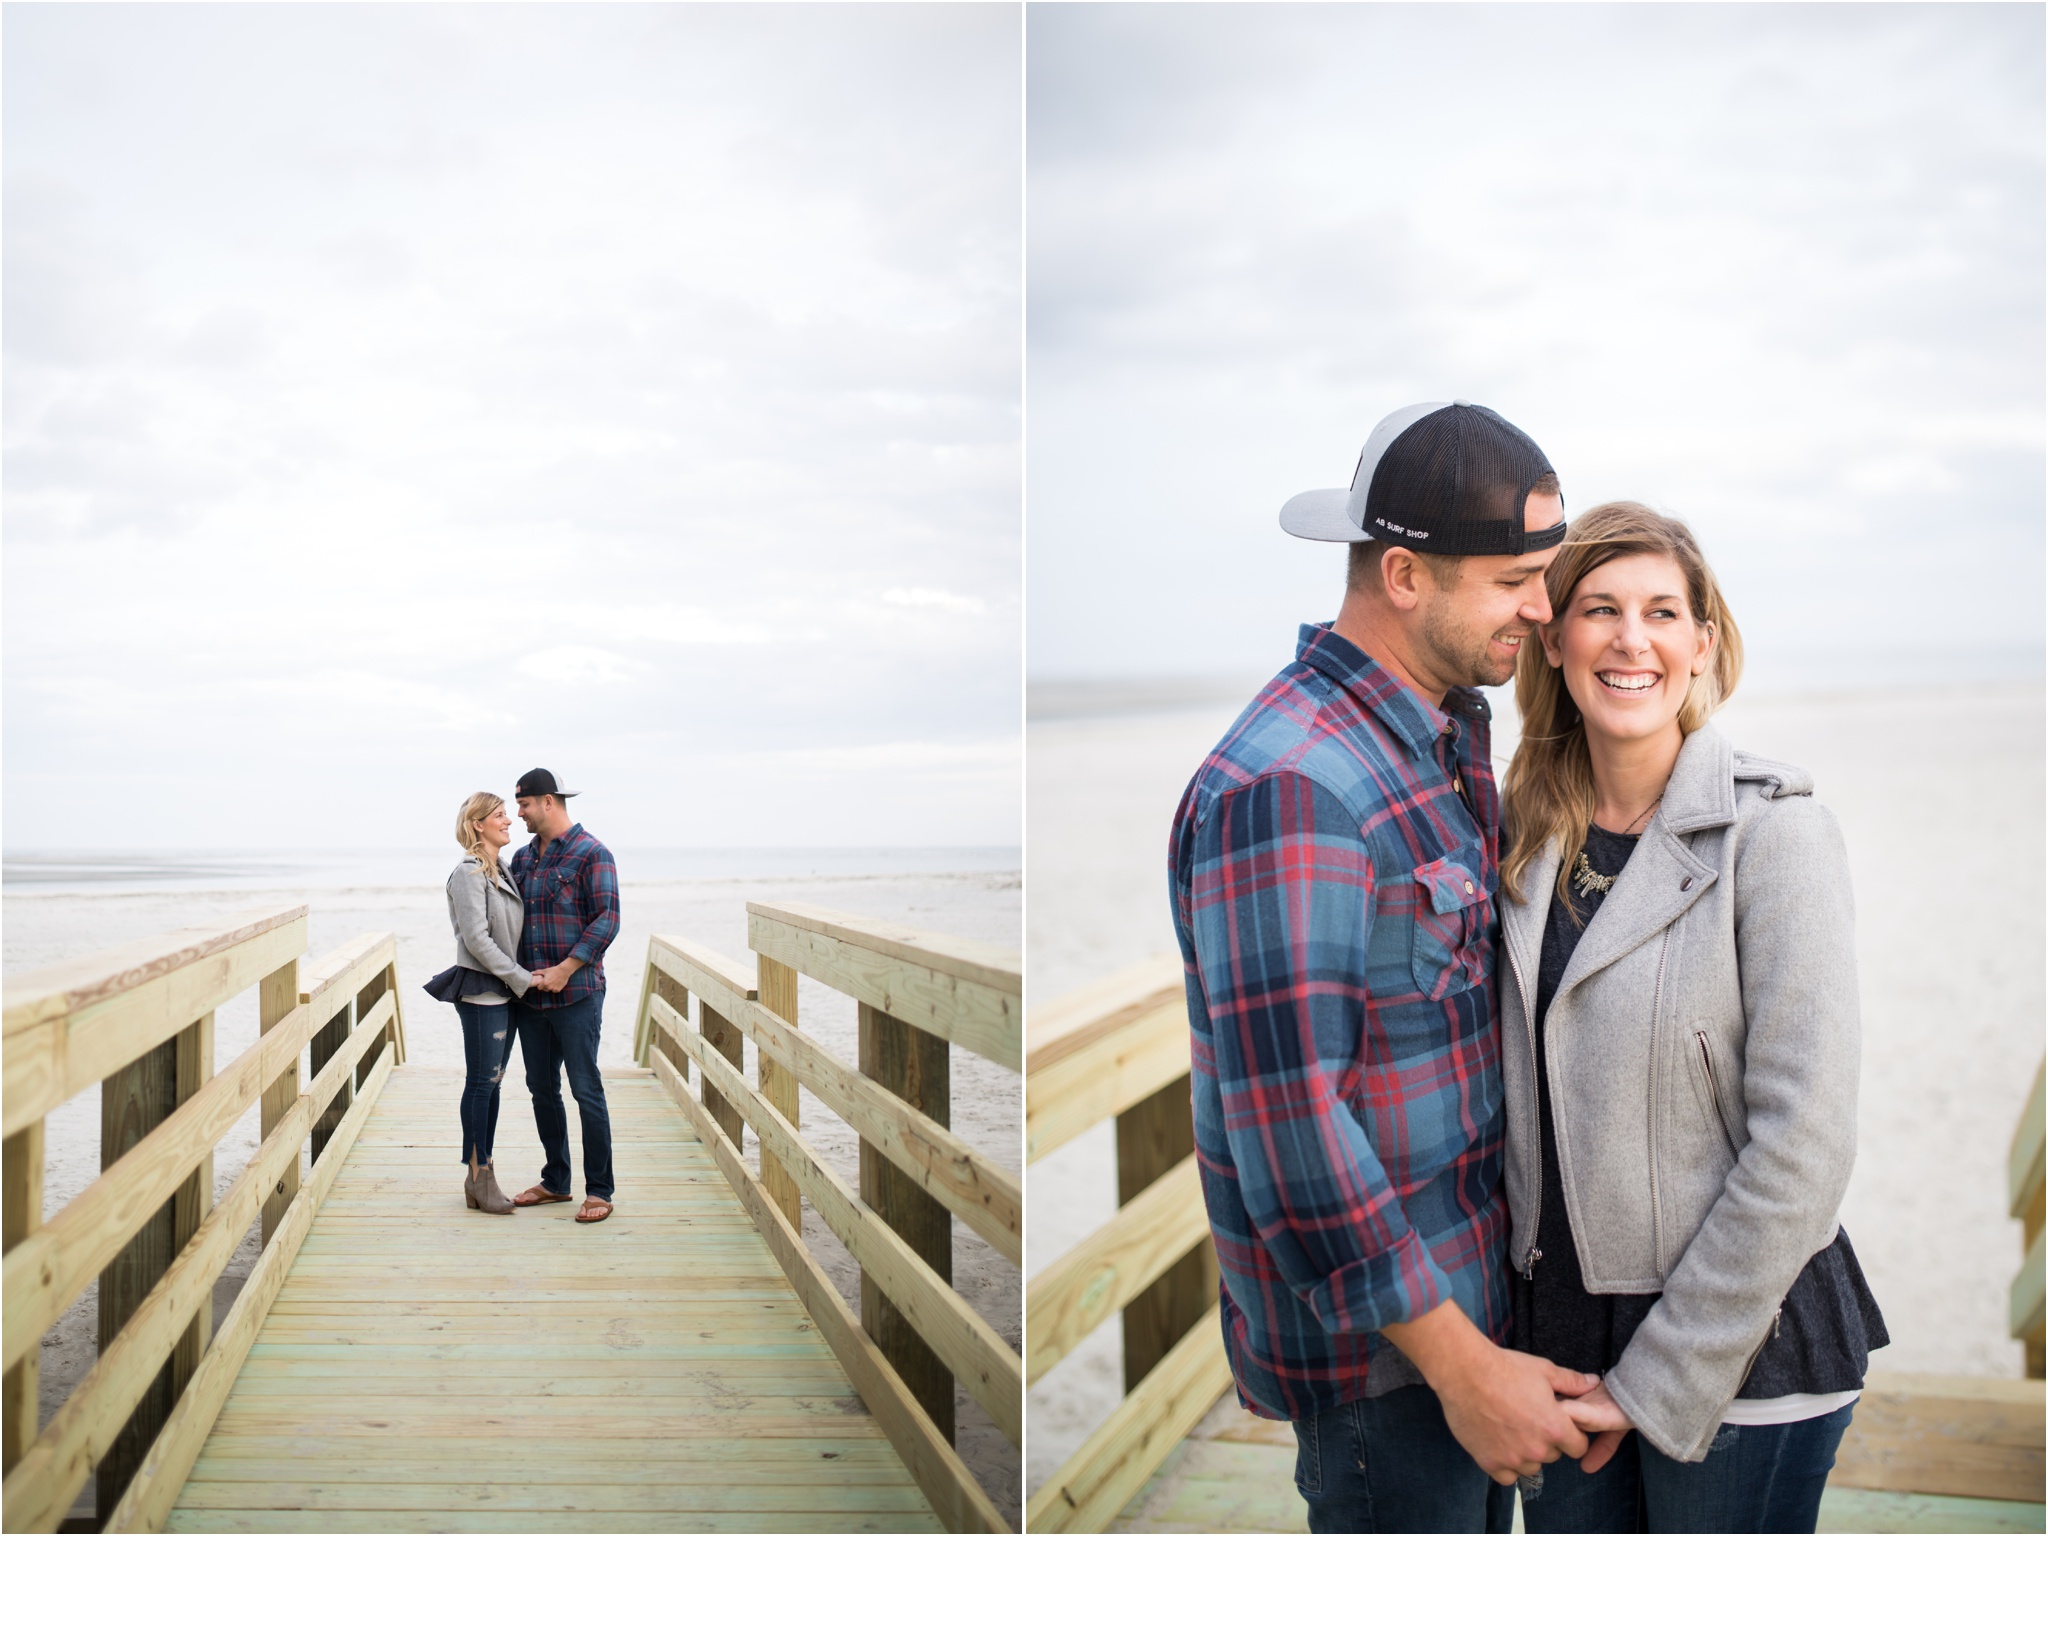 Rainey_Gregg_Photography_St._Simons_Island_Georgia_California_Wedding_Portrait_Photography_0567.jpg